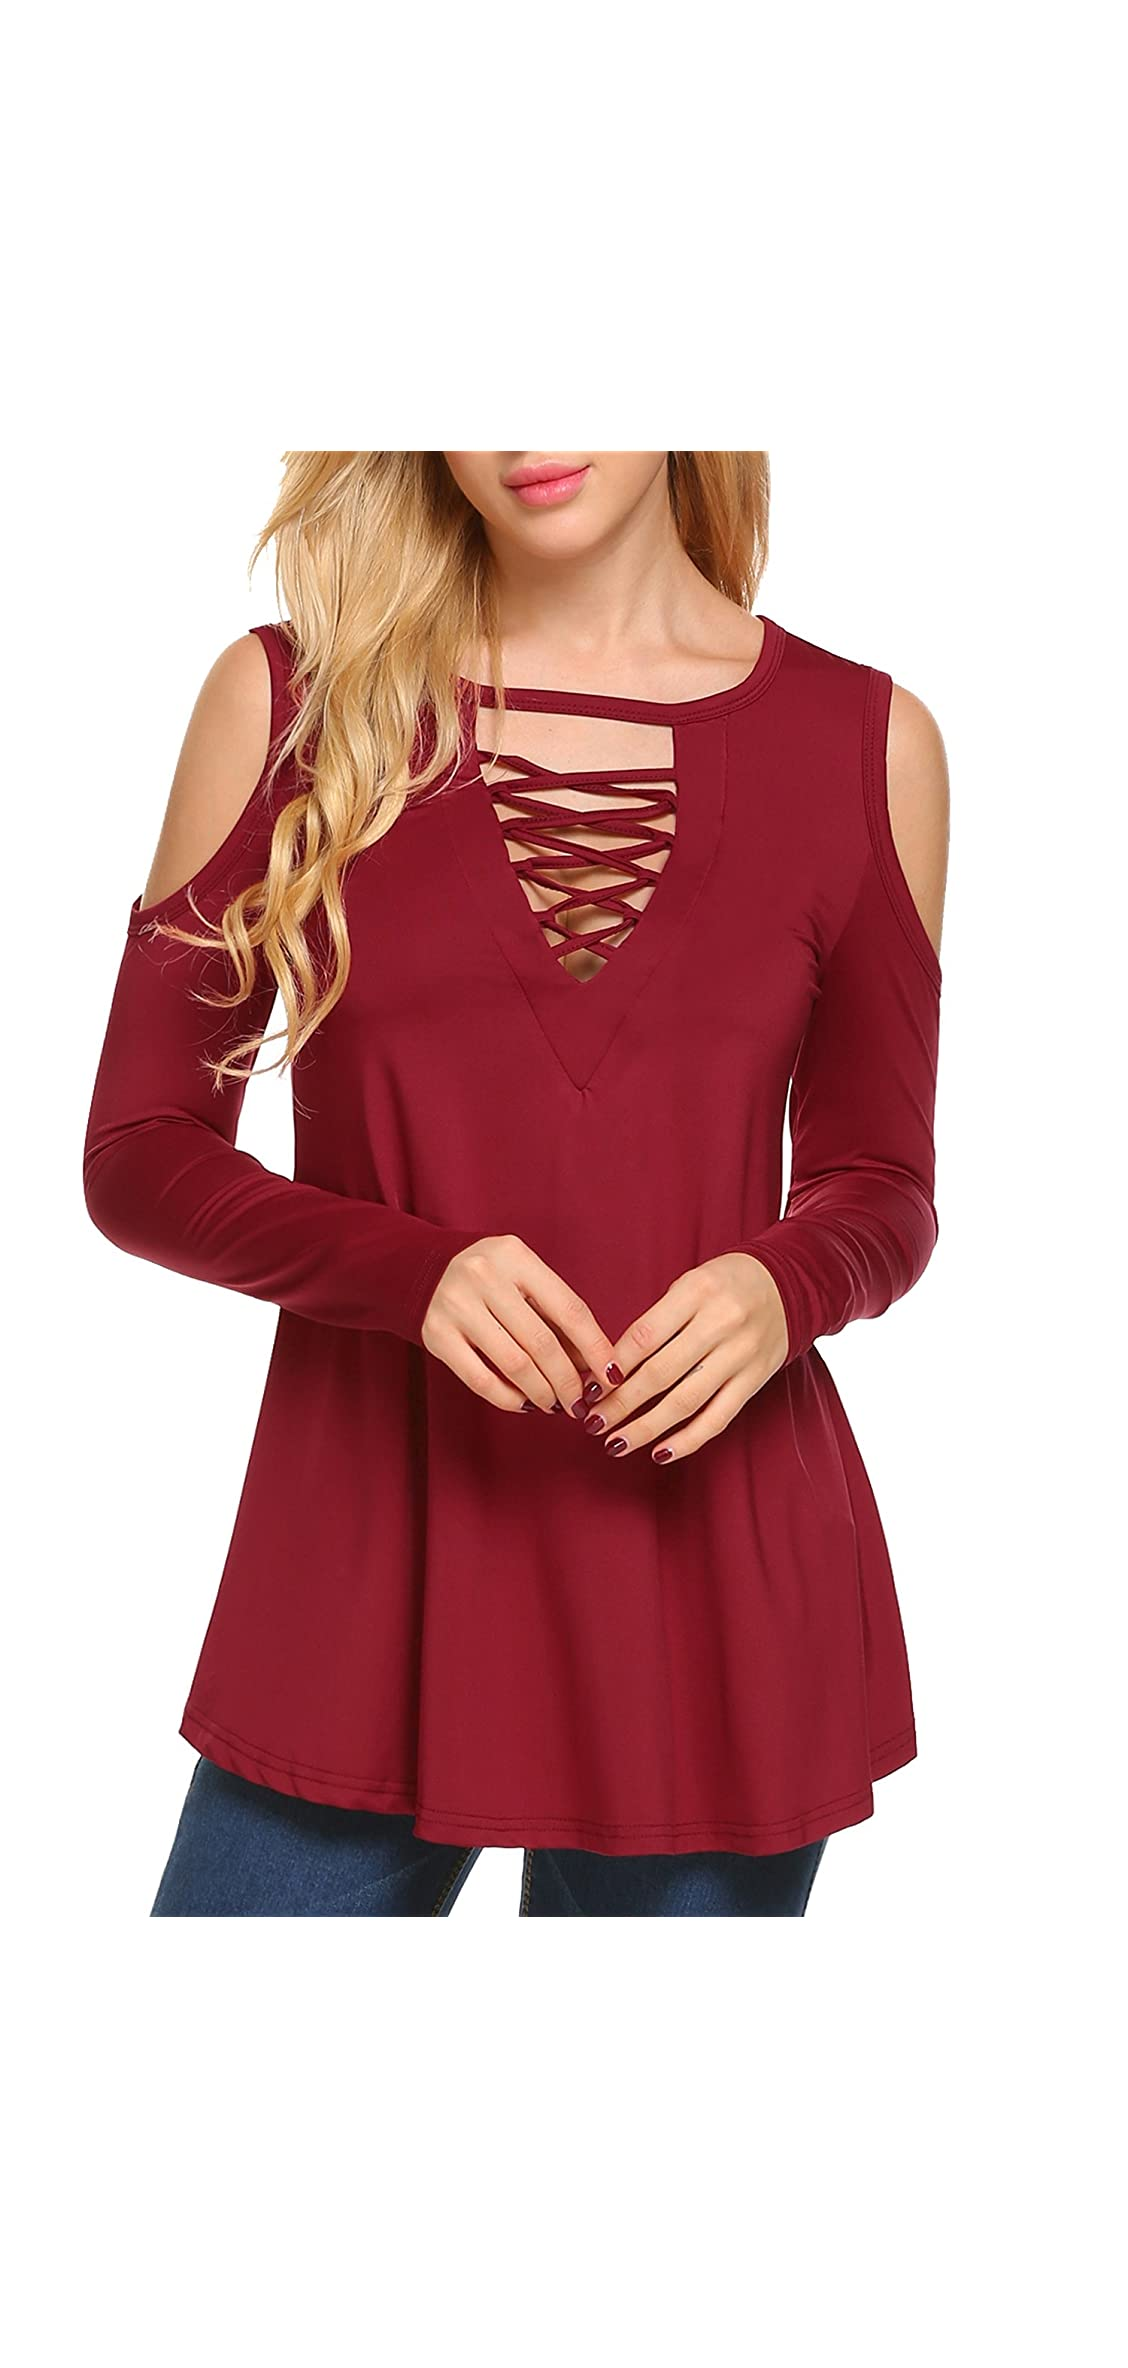 Women's Blouse Shirts Criss Cross Cold Shoulder Short V